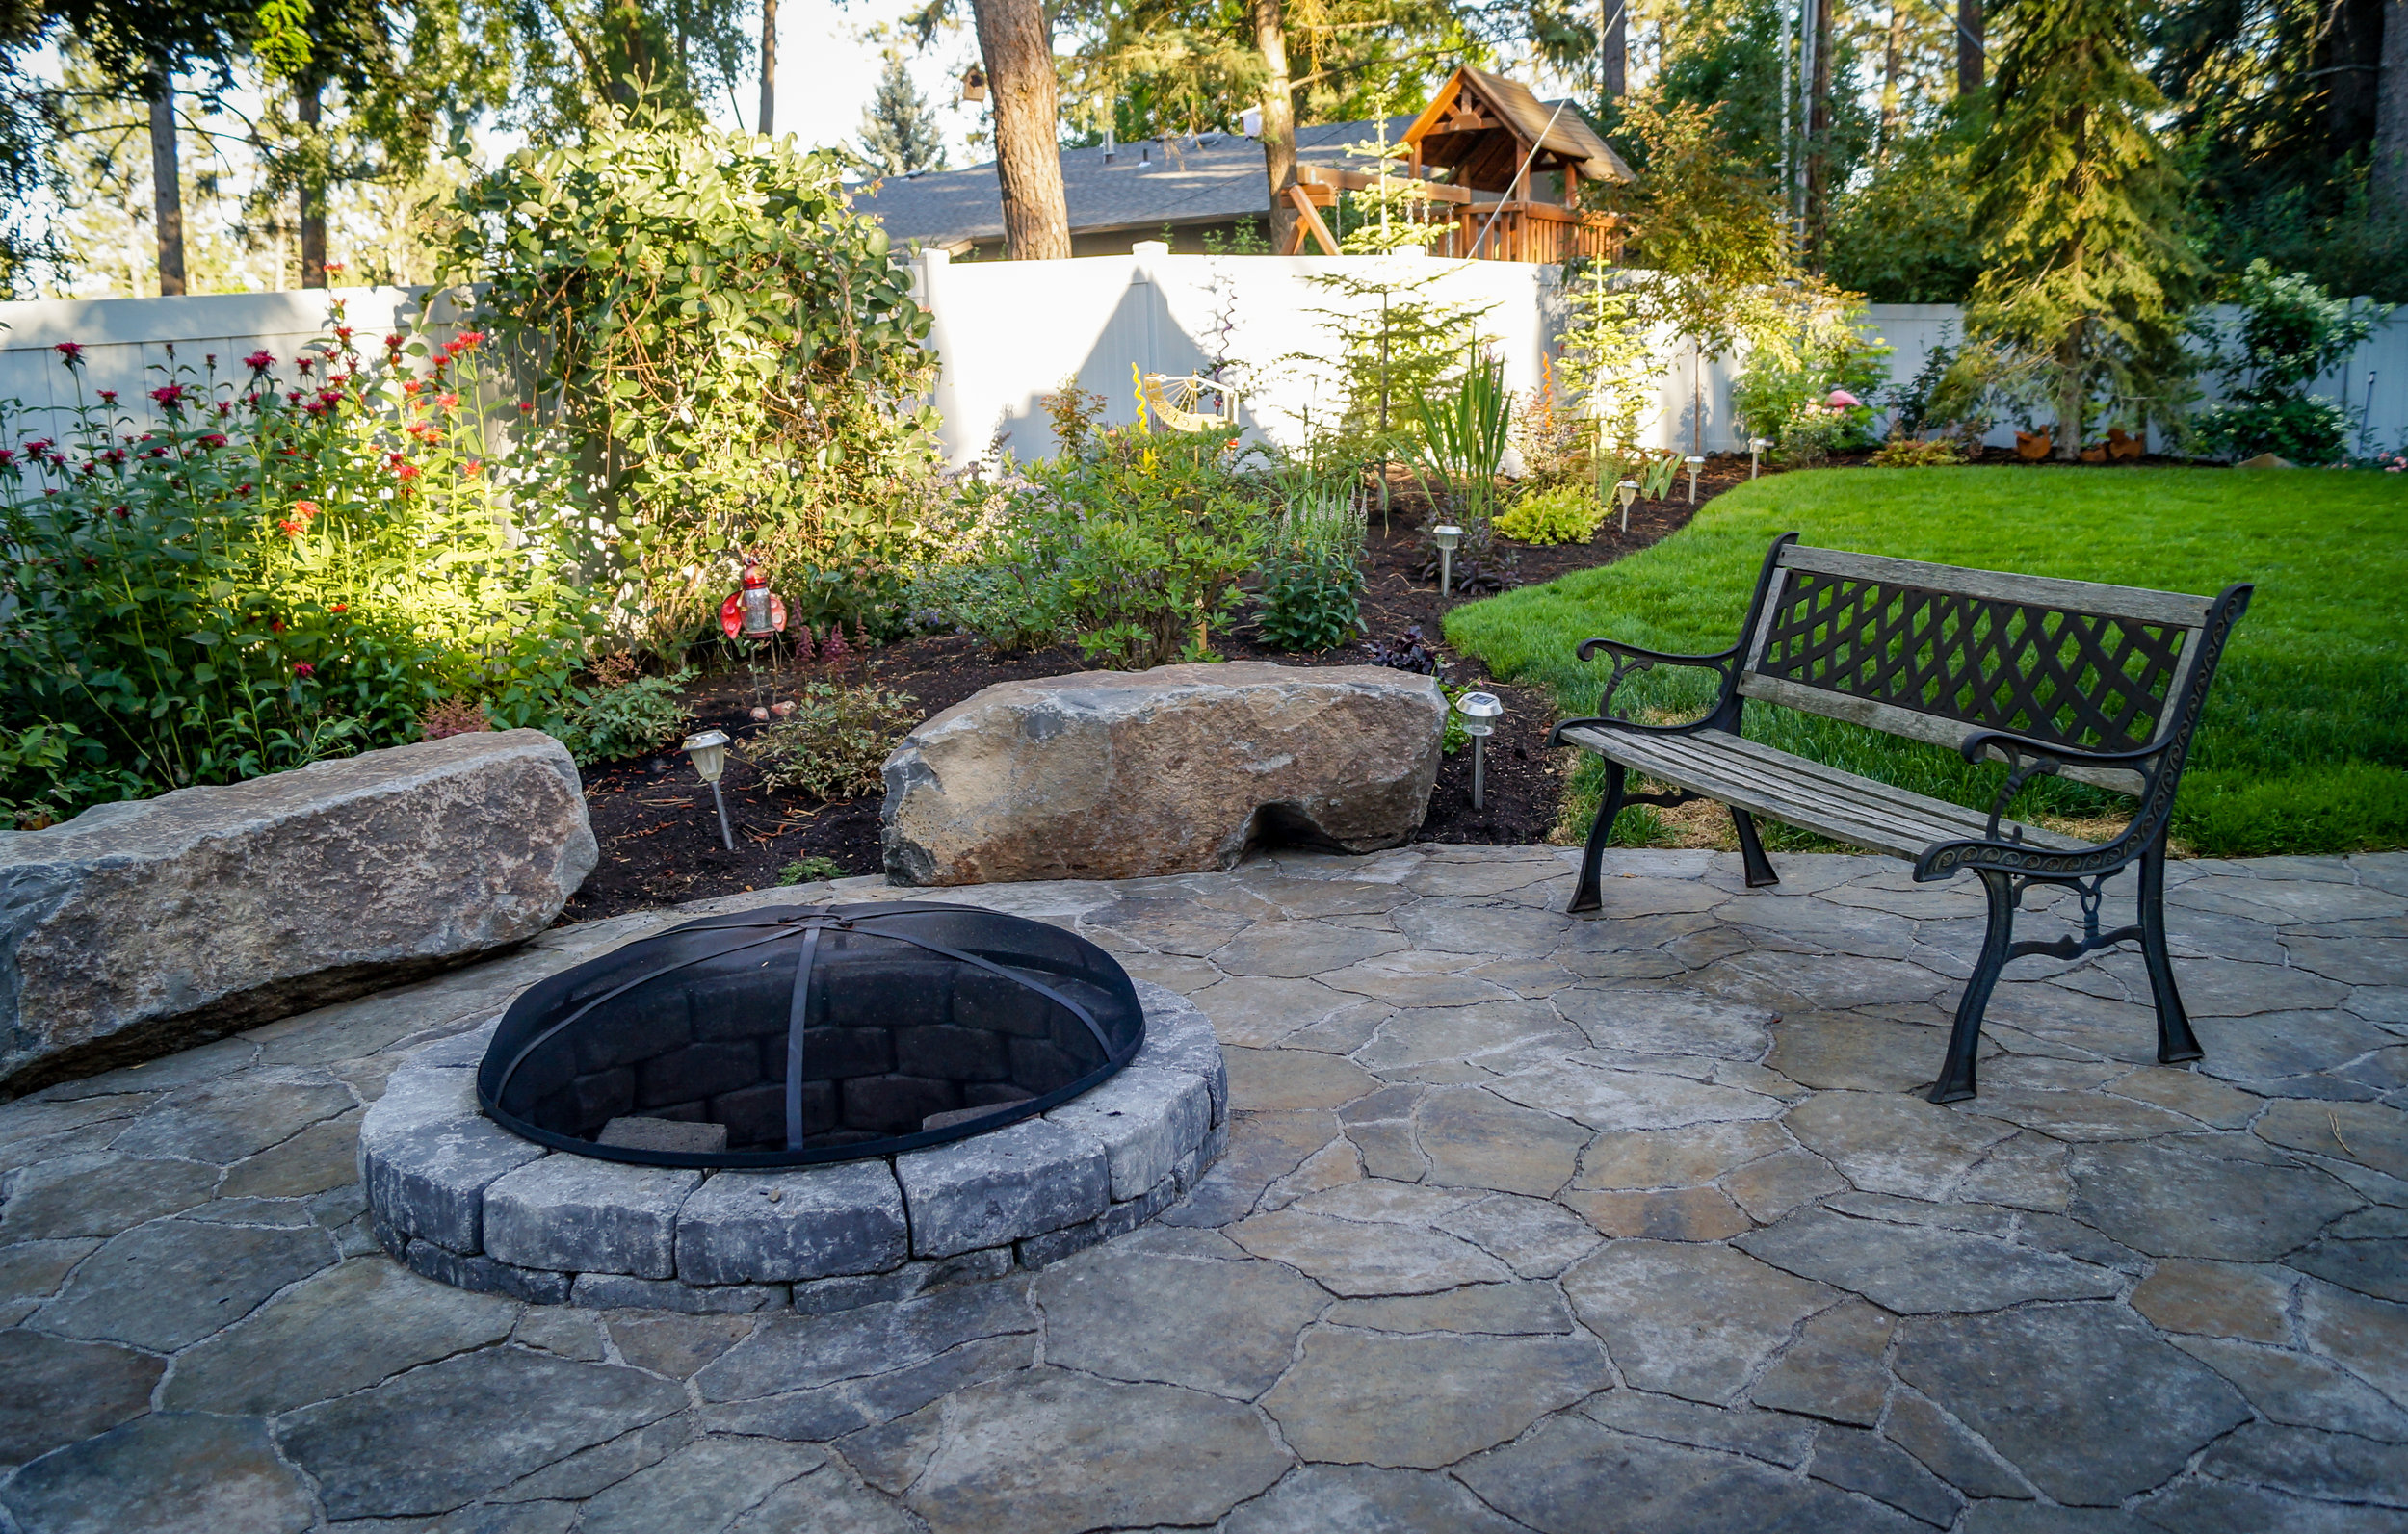 northwest landscaping with stone bench rocks and paver patio around fire pit